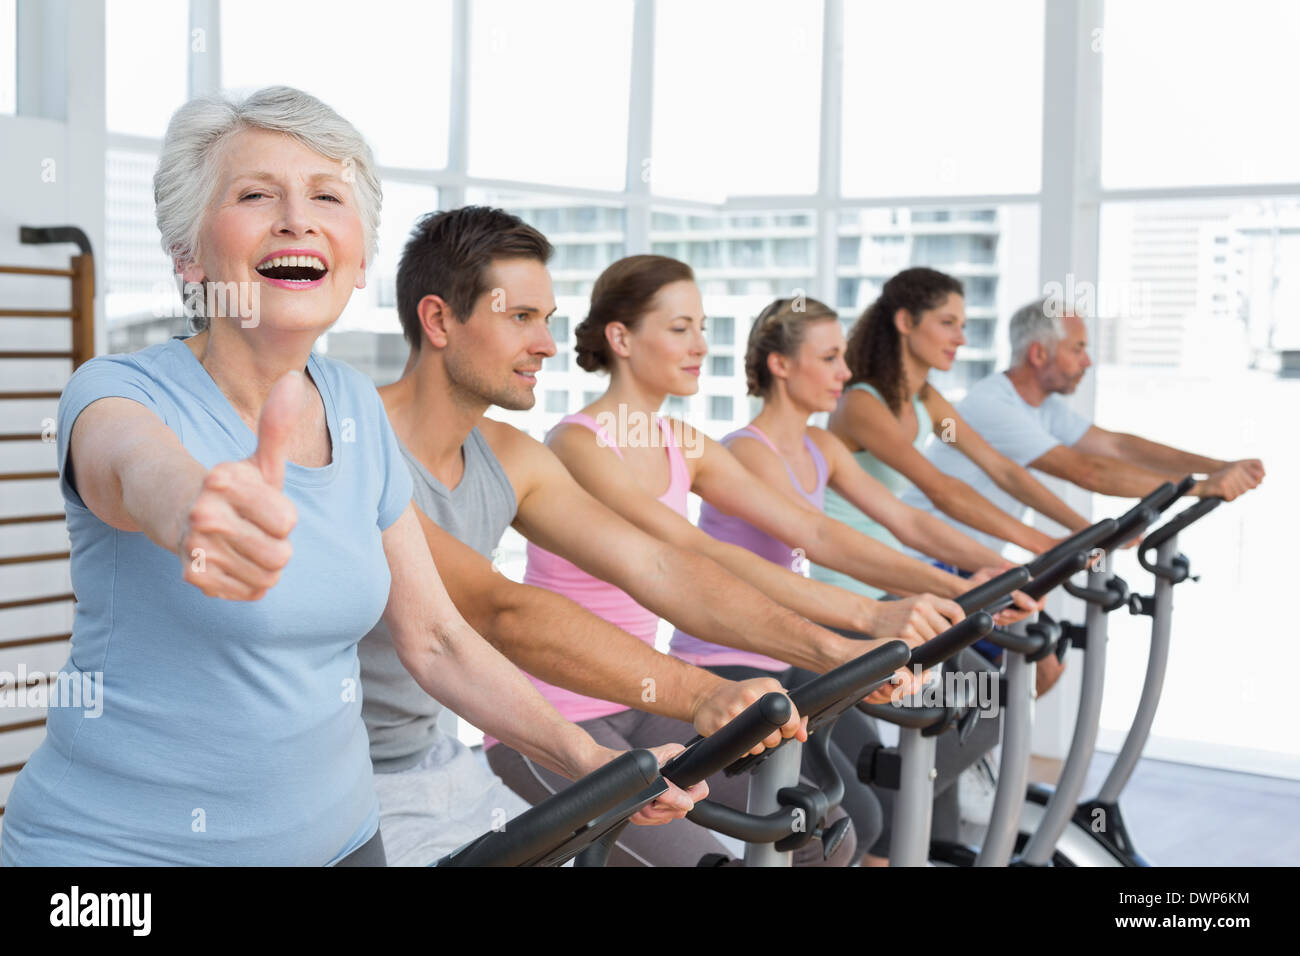 Woman gesturing thumbs up with class at spinning class - Stock Image